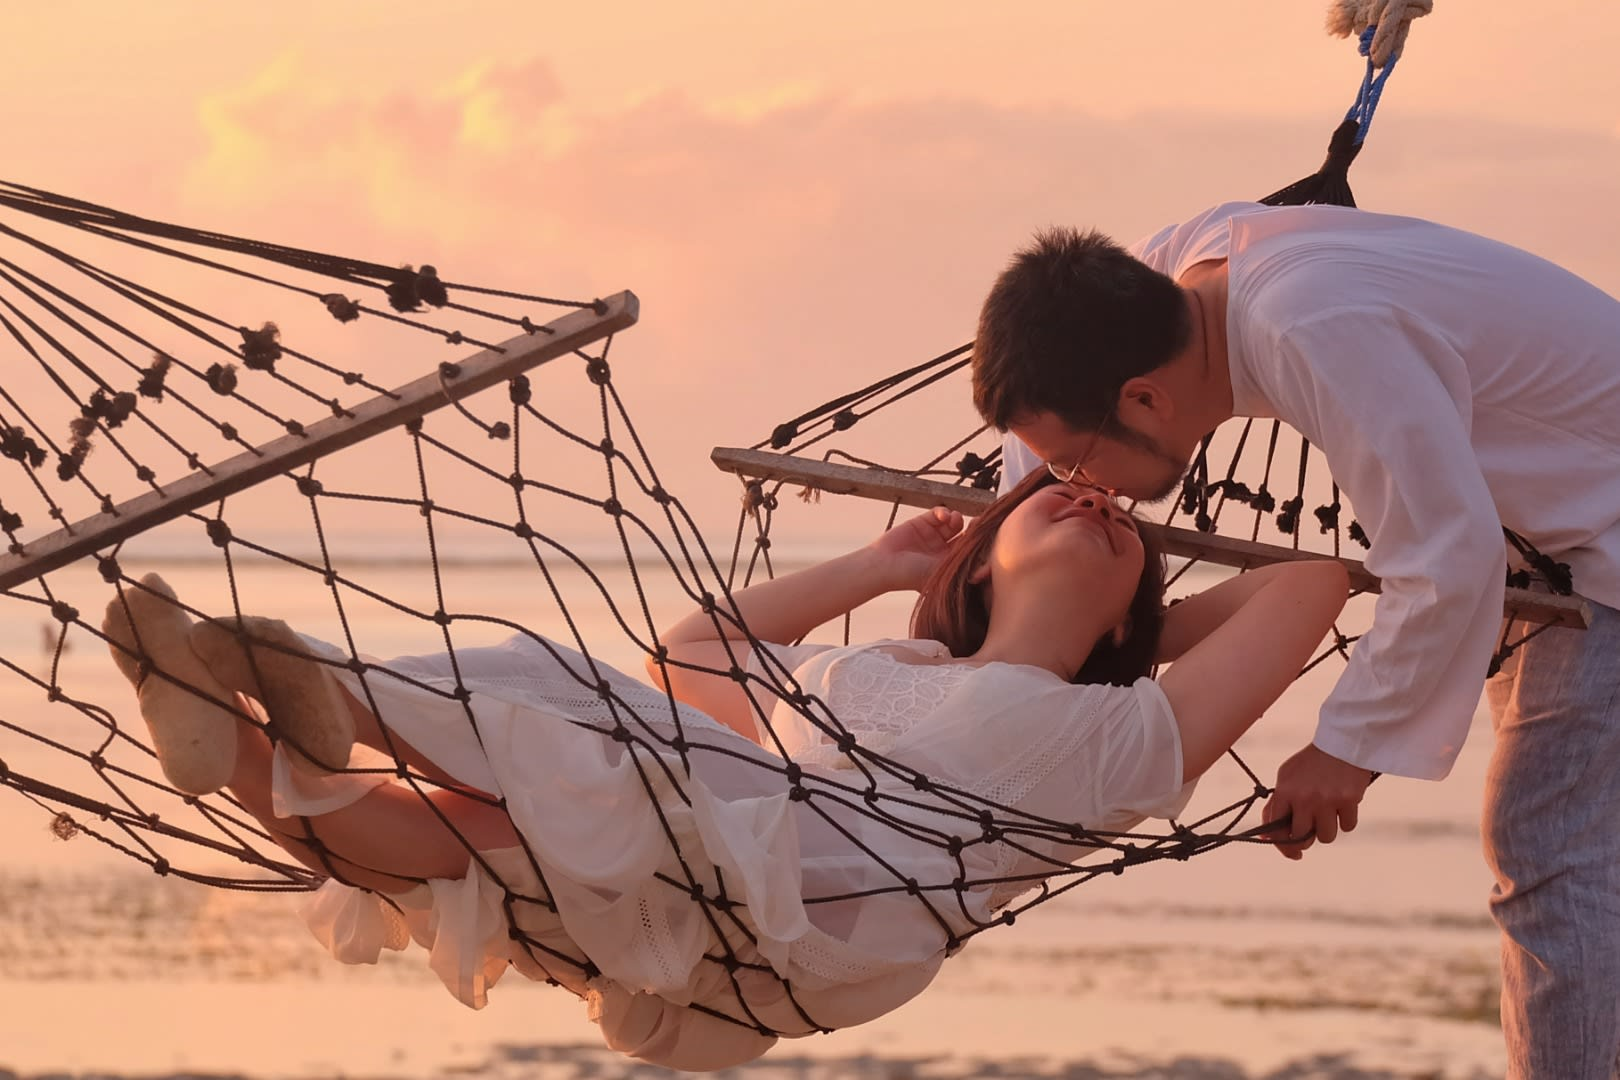 Romantic things to do in Bali for couples - private photoshoot